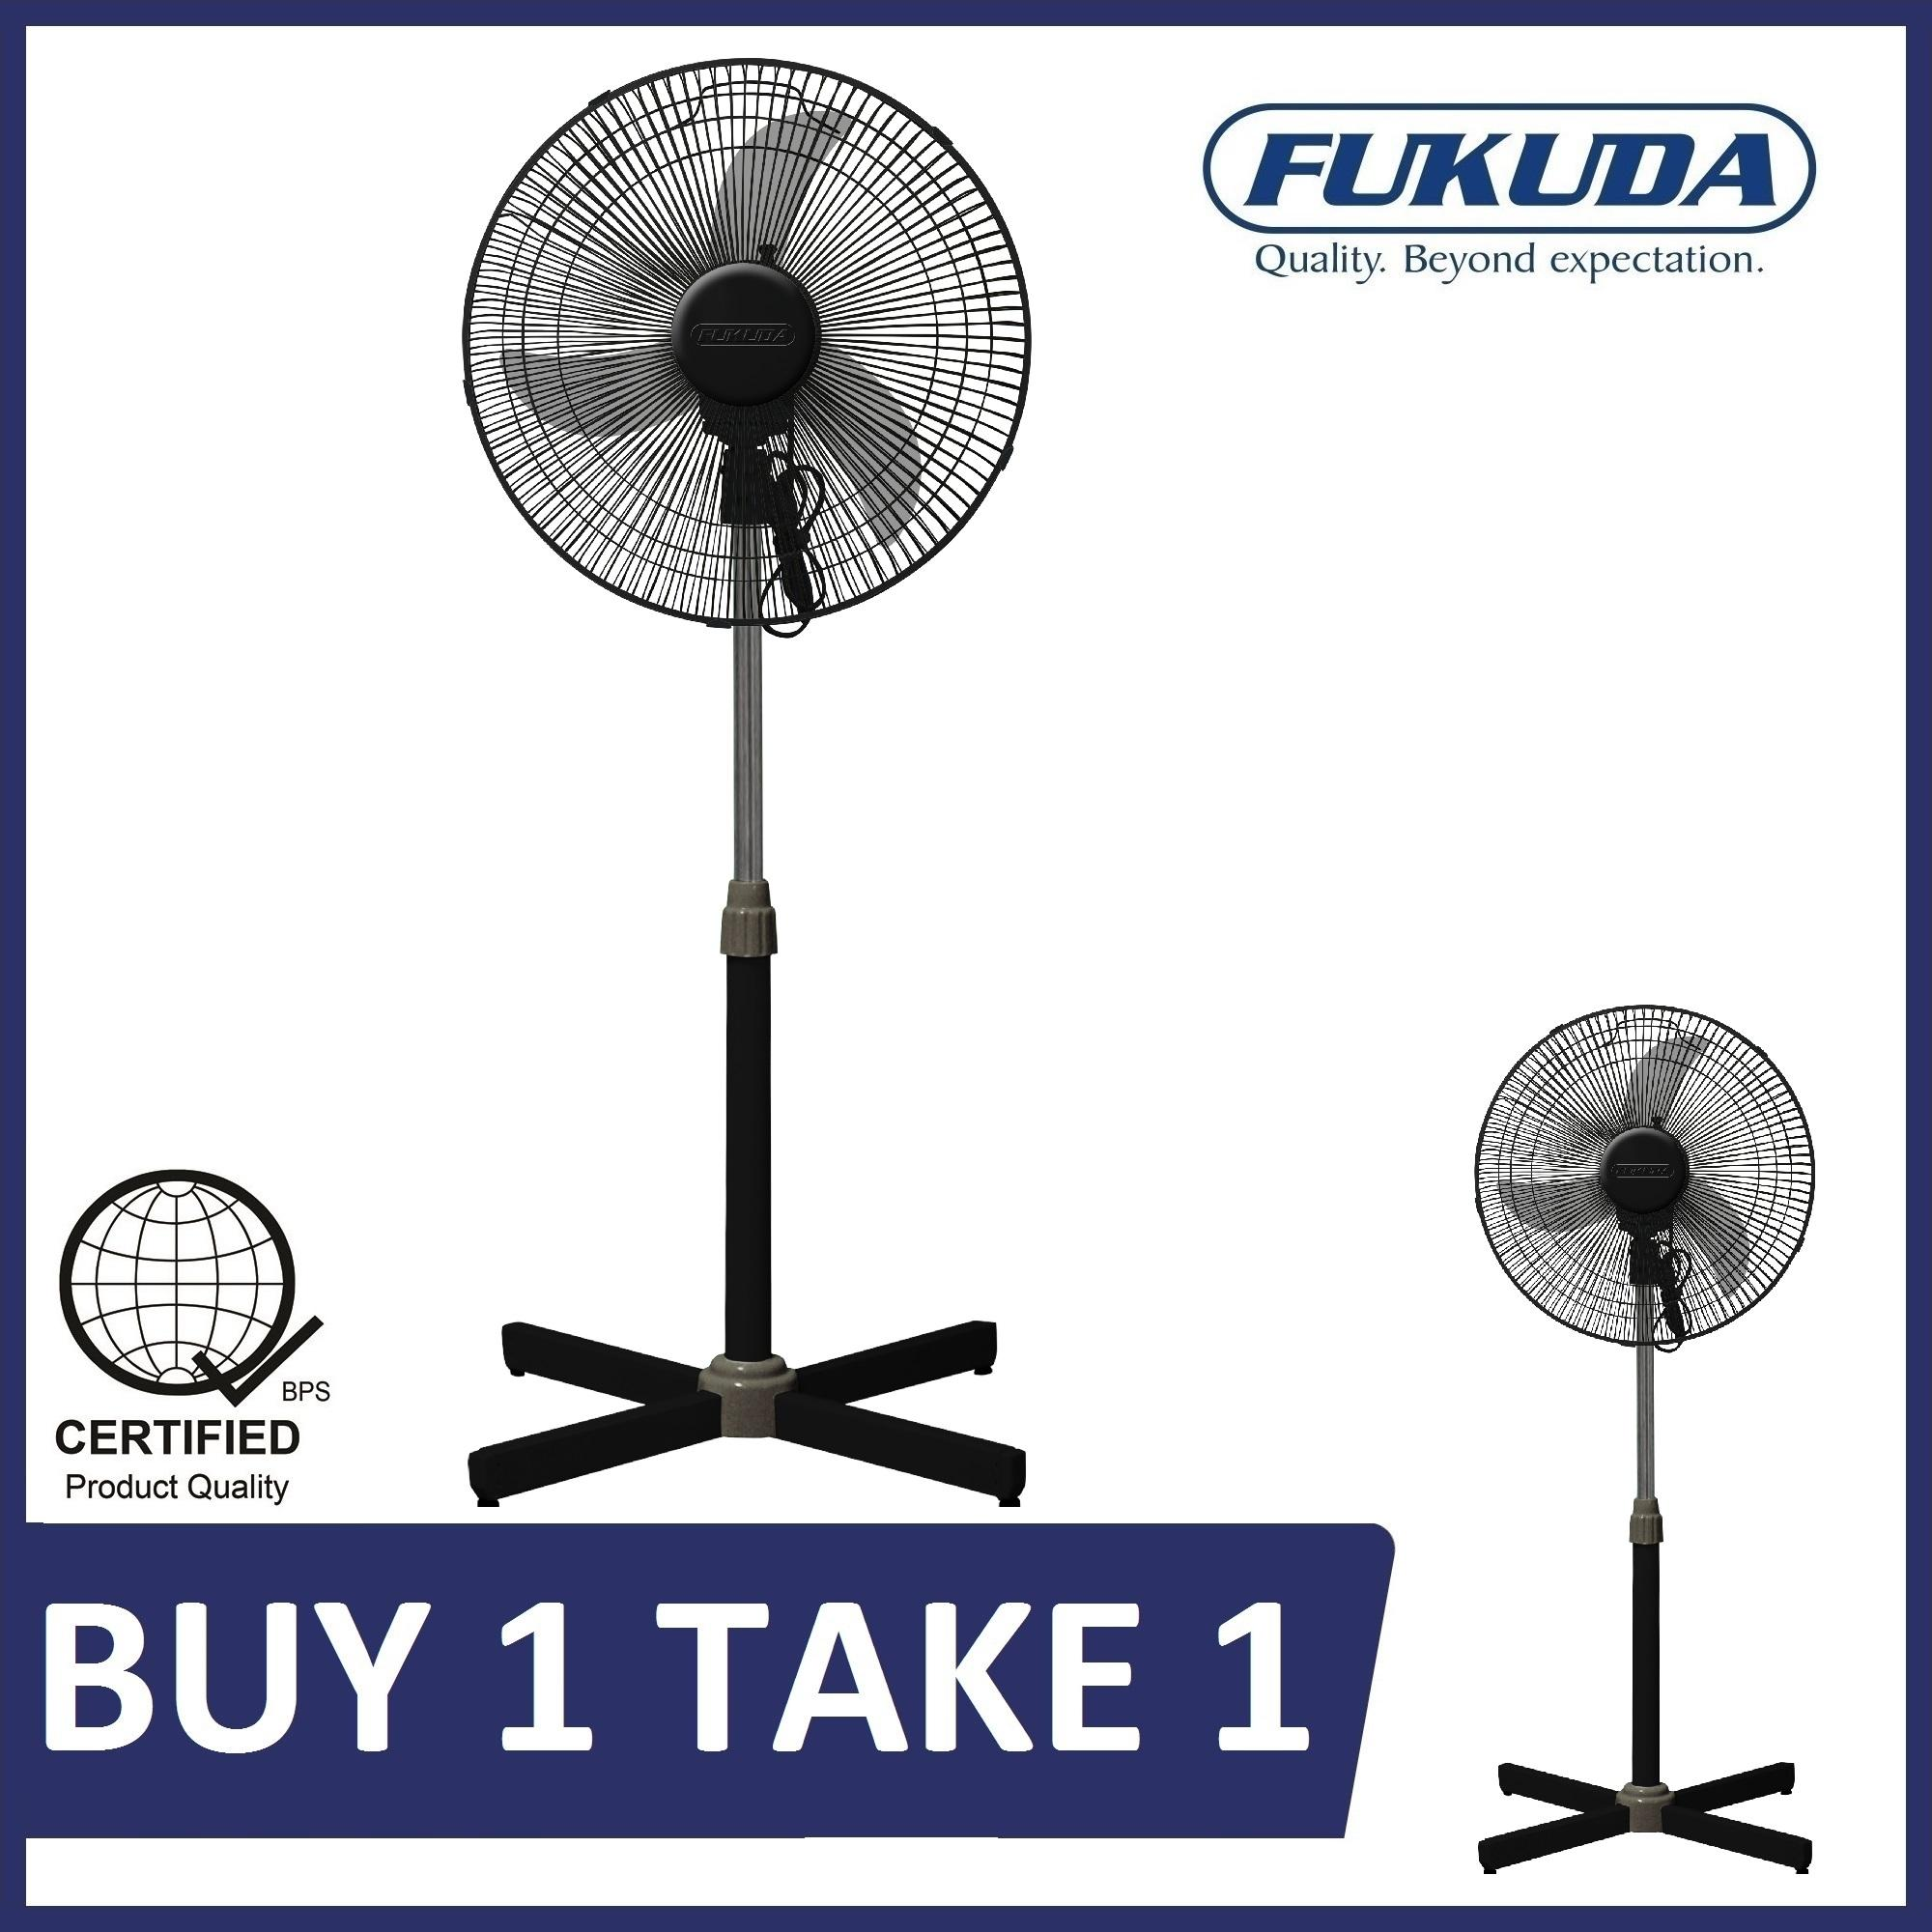 Fan For Sale Electric Prices Brands Review In Philippines Solar Attic Battery Backup System Components Fukuda Sf164xs 16 Banana Blade Plastic Stand Black Buy 1 Take